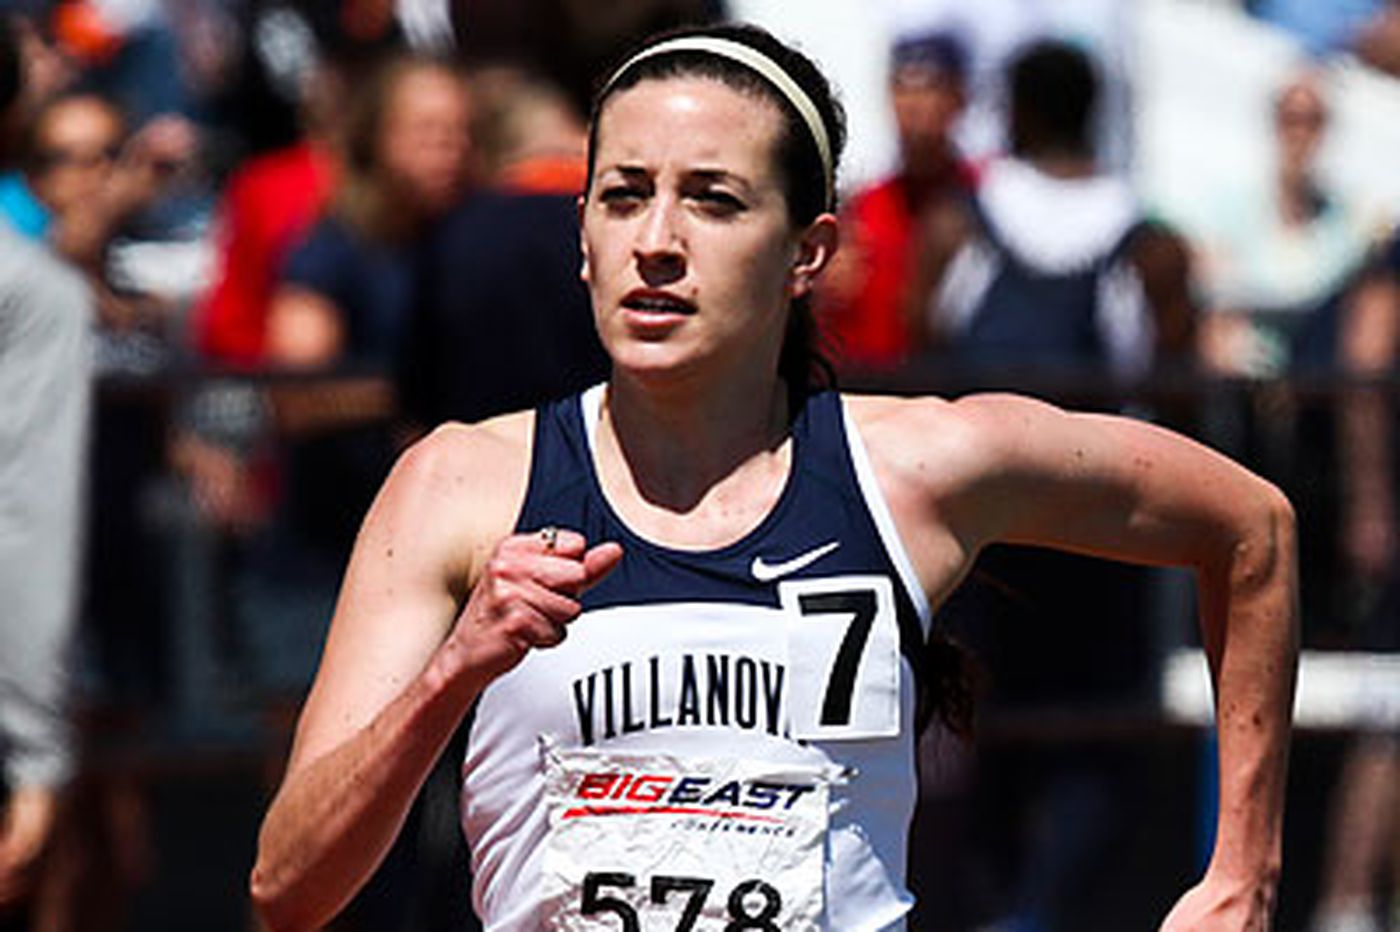 Getting a Reid on Villanova track star Sheila